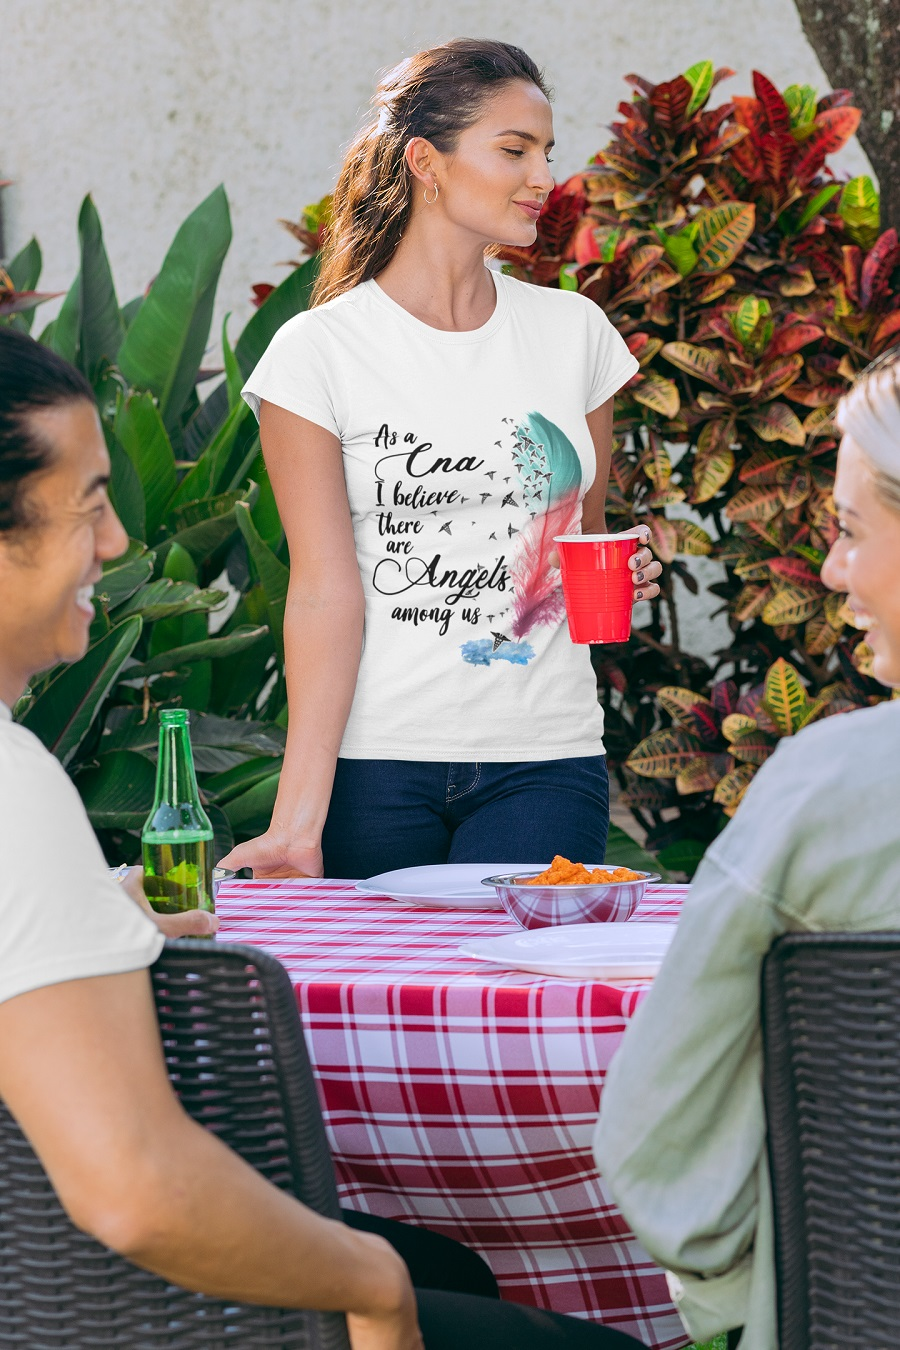 As a cna i believe there are angels among us t-shirt